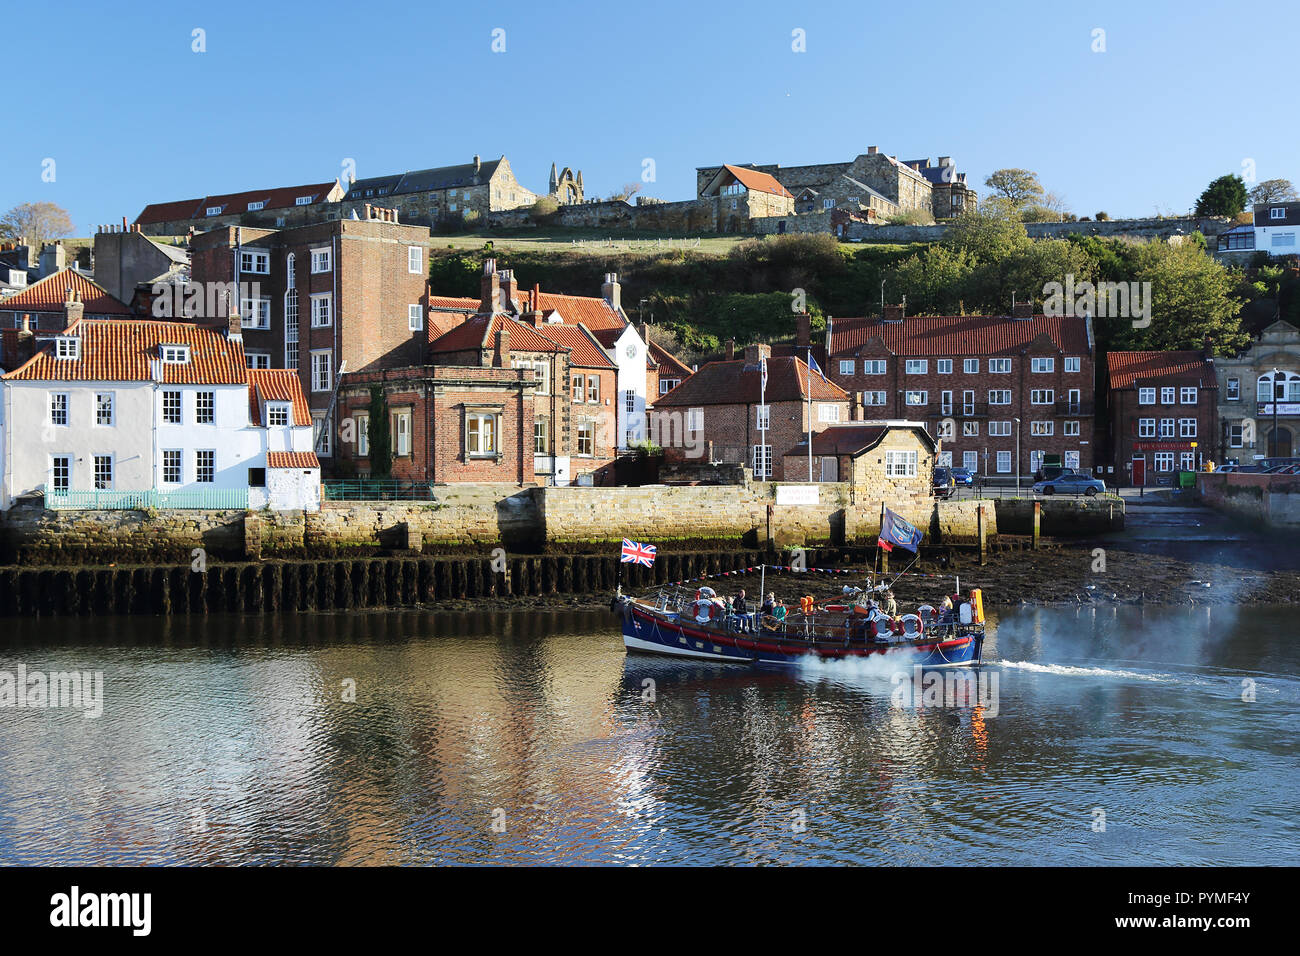 An ex-lifeboat leaves Whitby, North Yorkshire, UK harbour carrying tourists for a trip out to sea. Stock Photo